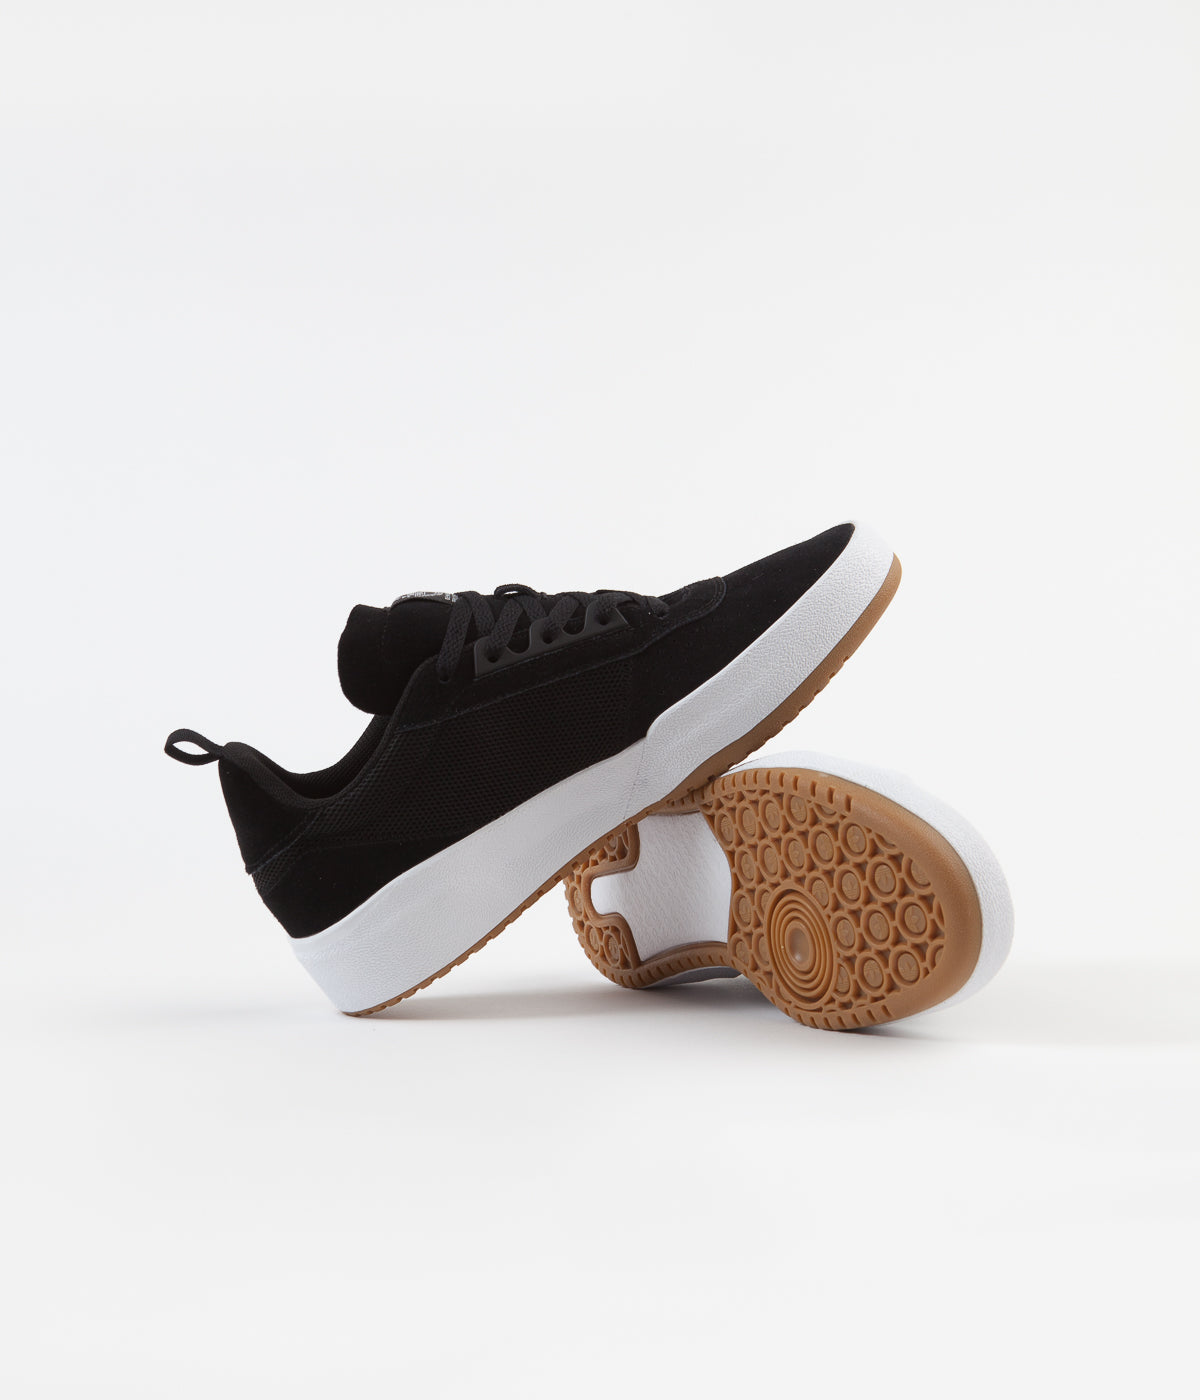 Adidas Liberty Cup Shoes - Core Black / White / Gum4